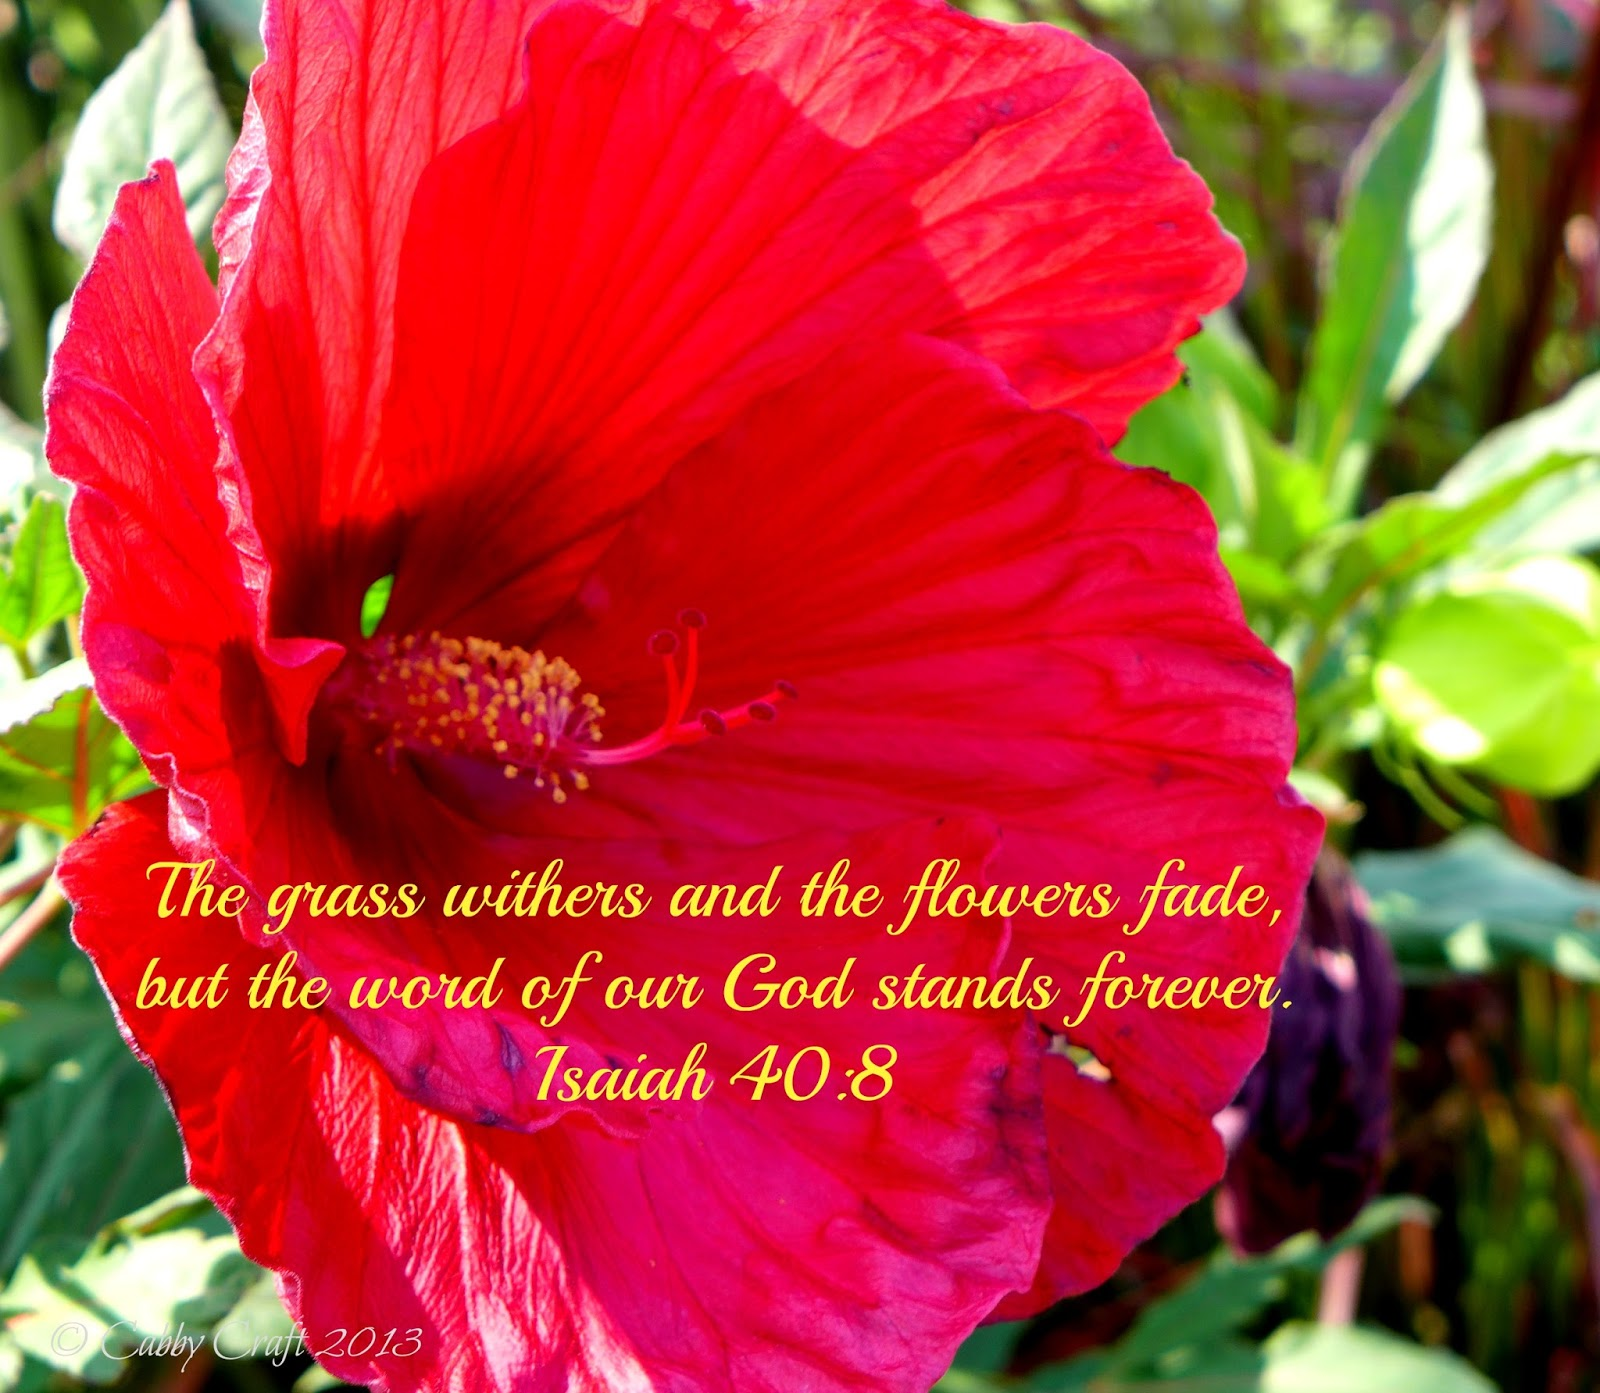 Cabbycraft Bible Verses The Grass Withers And The Flowers Fade